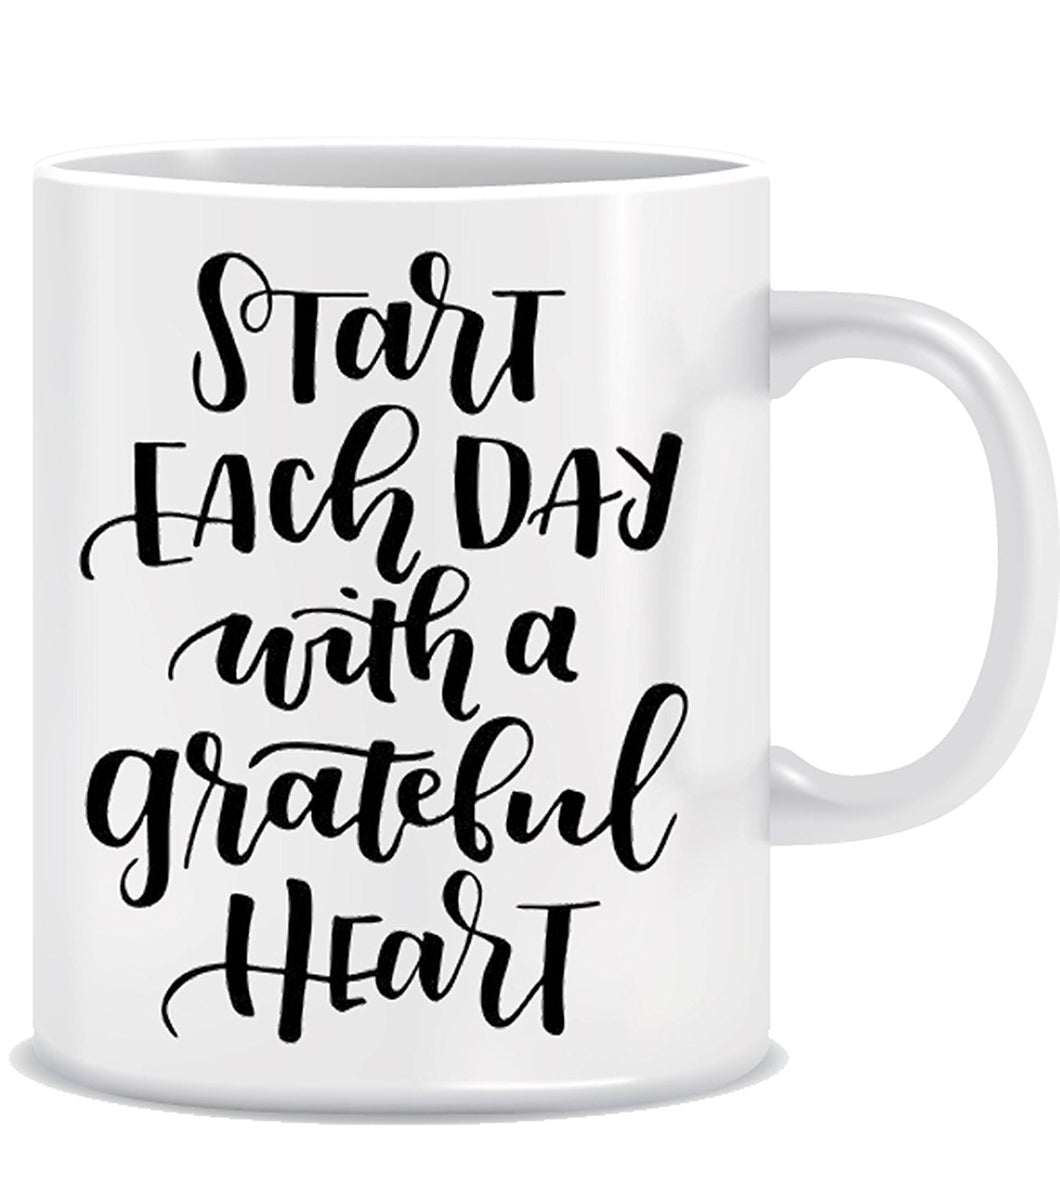 Start Each Day With Greatful Heart ED013